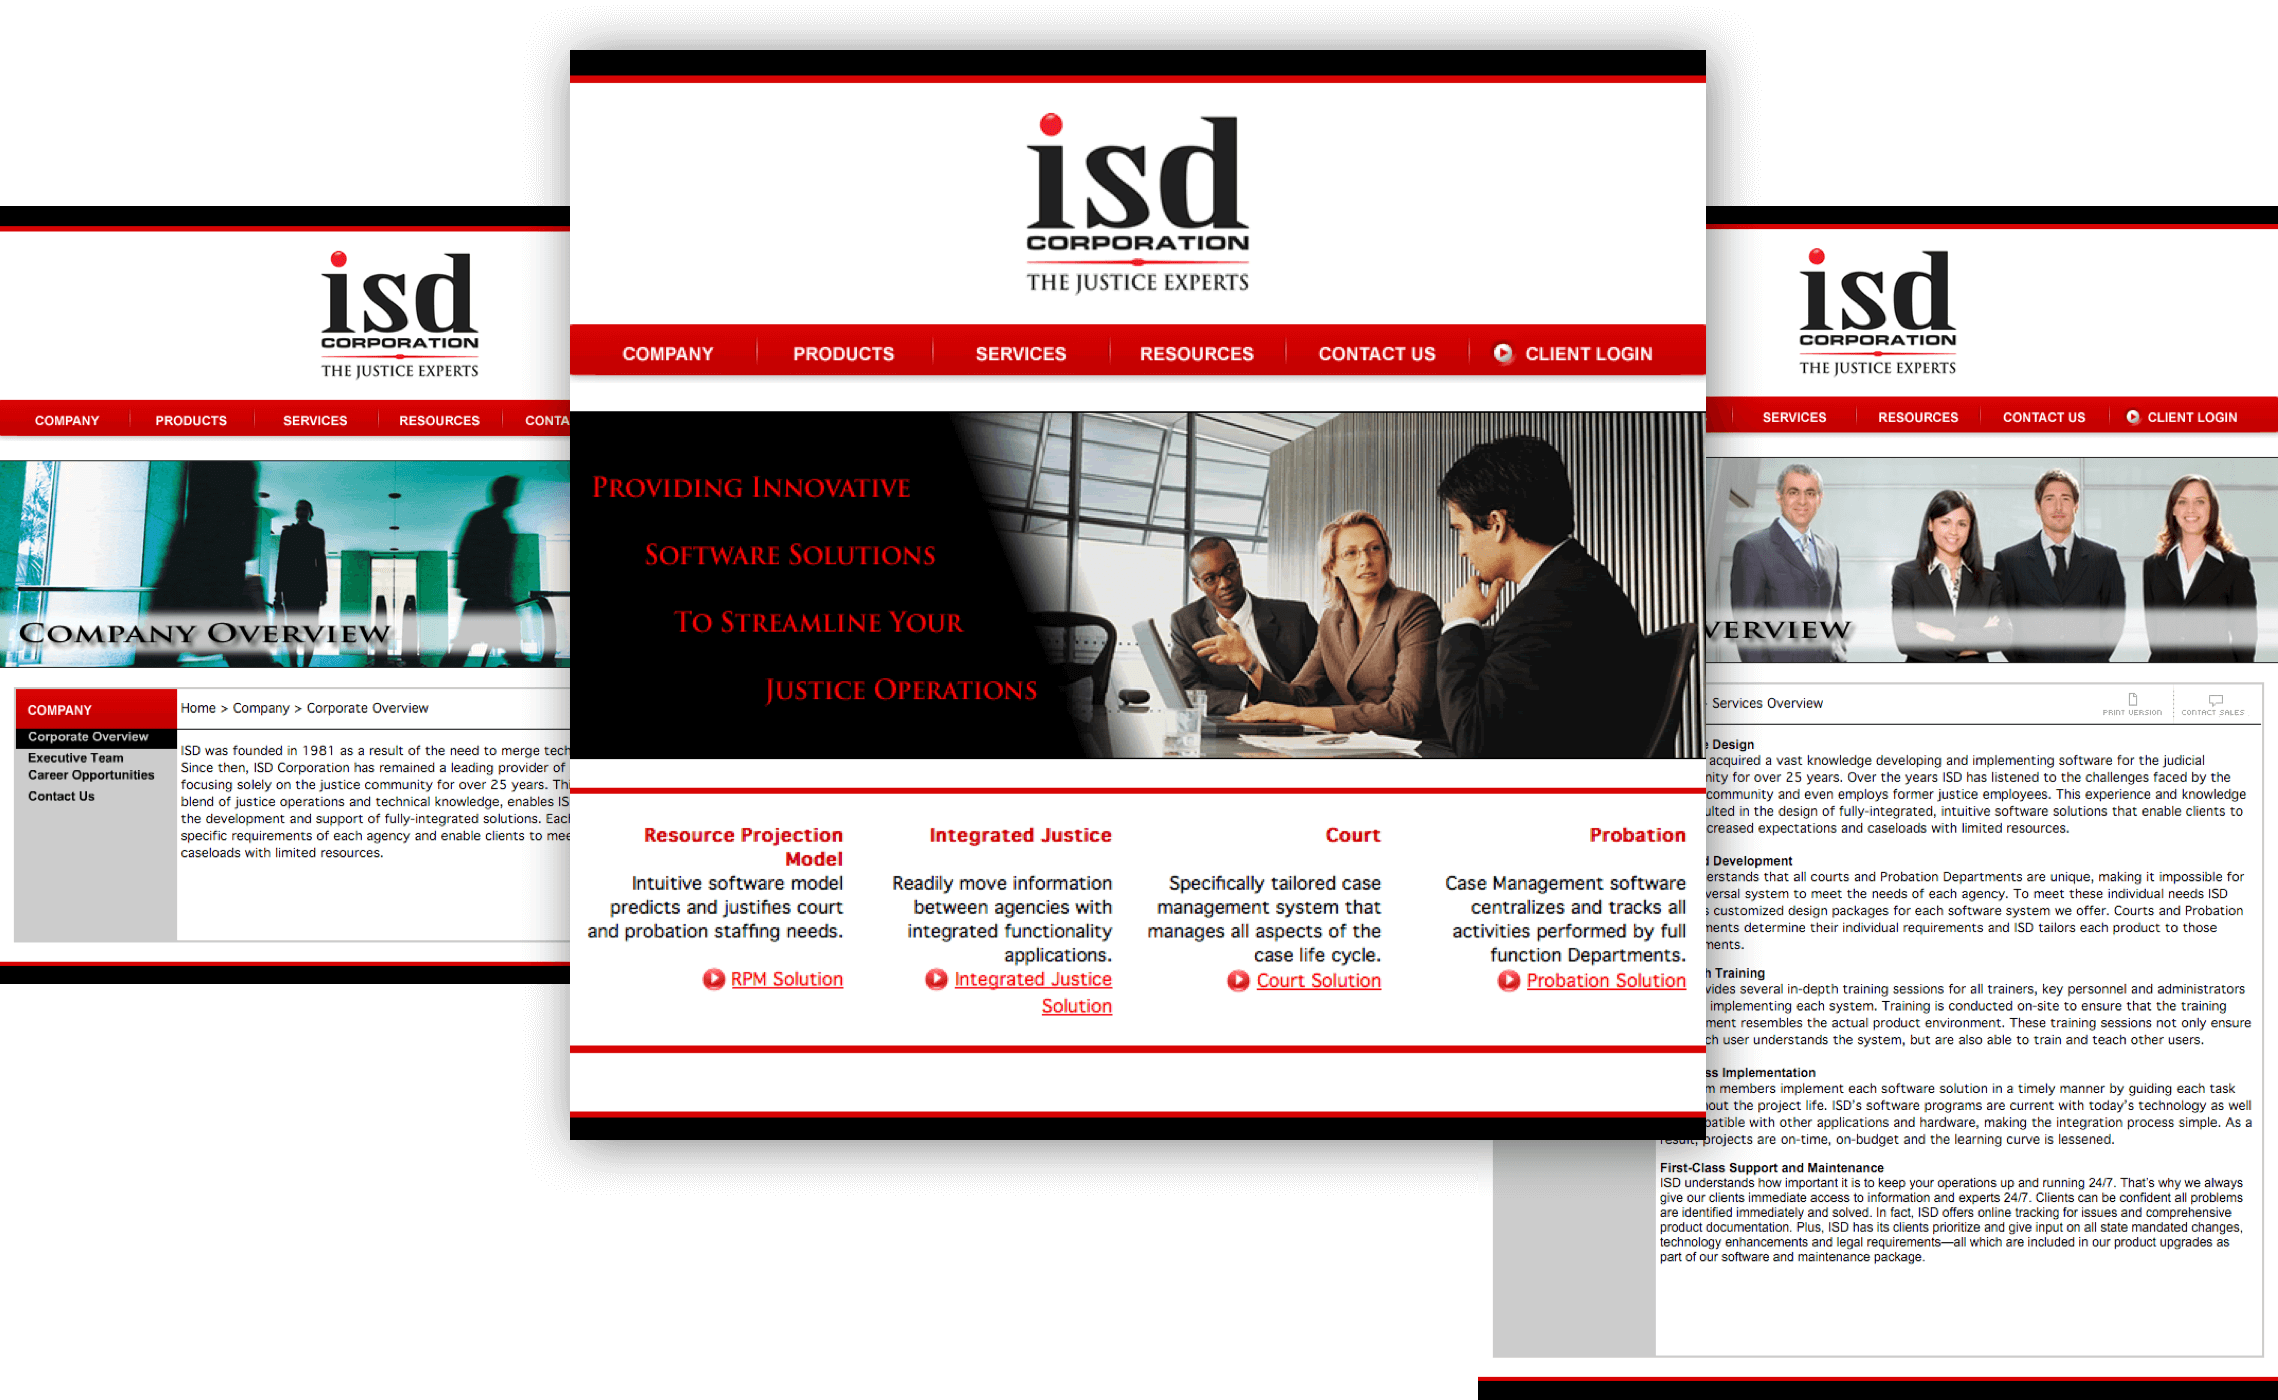 wordpress-isd-corporation-sp